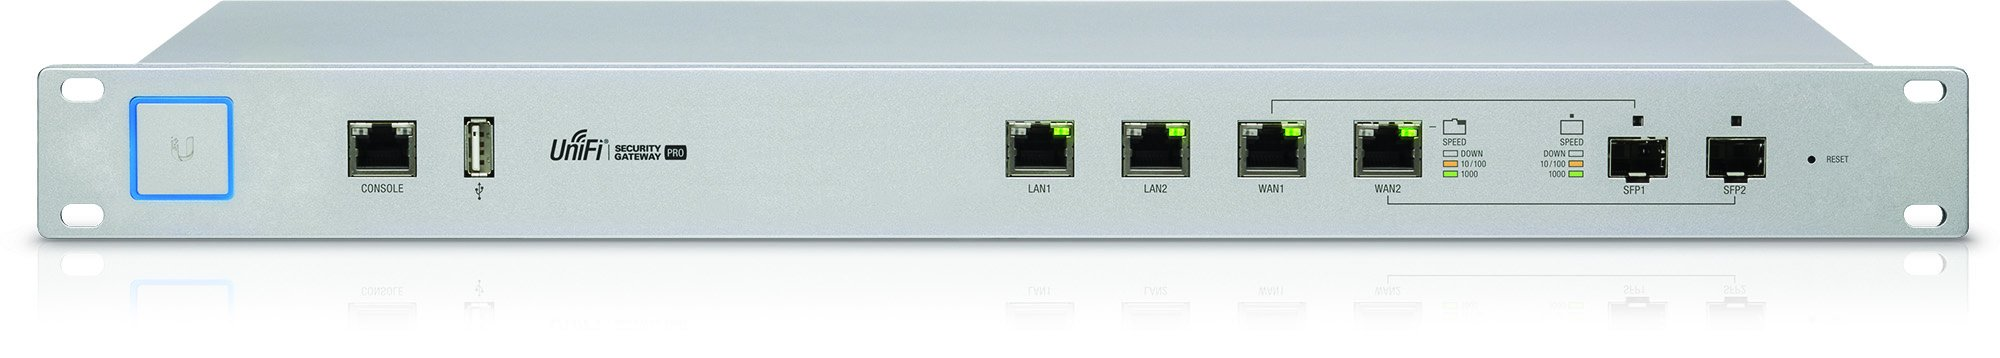 Unifi Security Gateway Pro 4-Port by Ubiquiti Networks